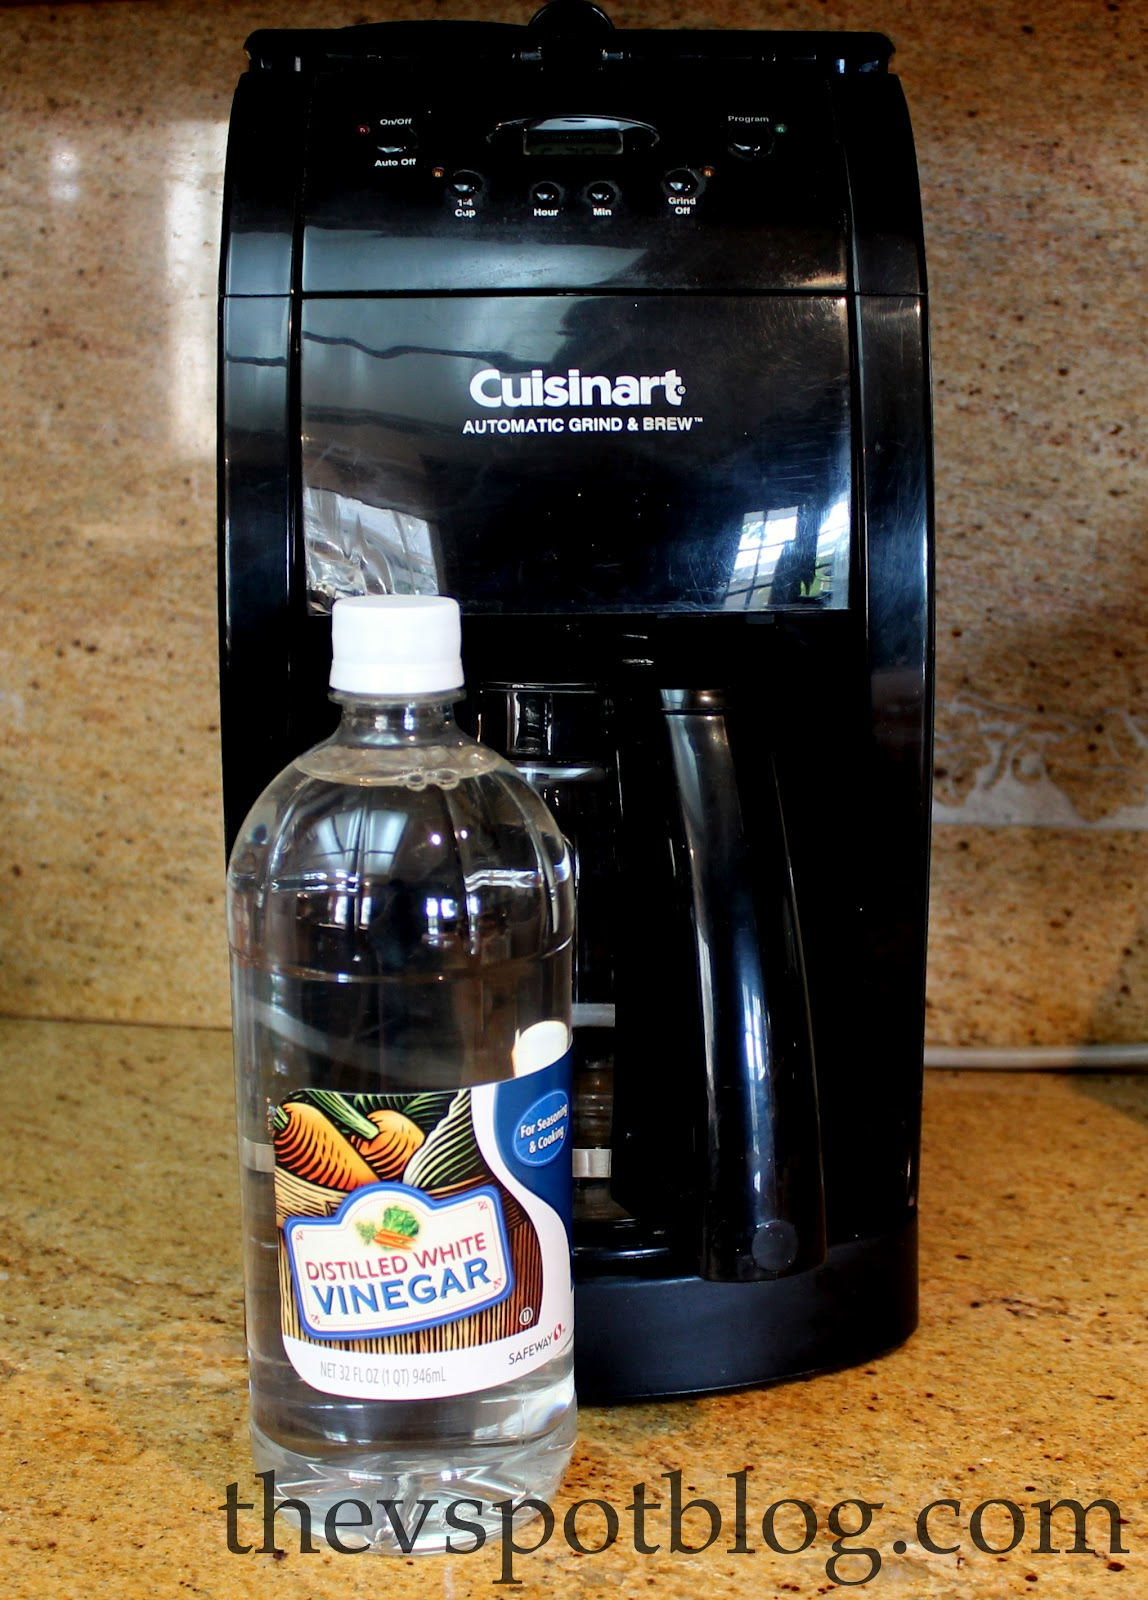 Clean your coffee maker using vinegar. The V Spot